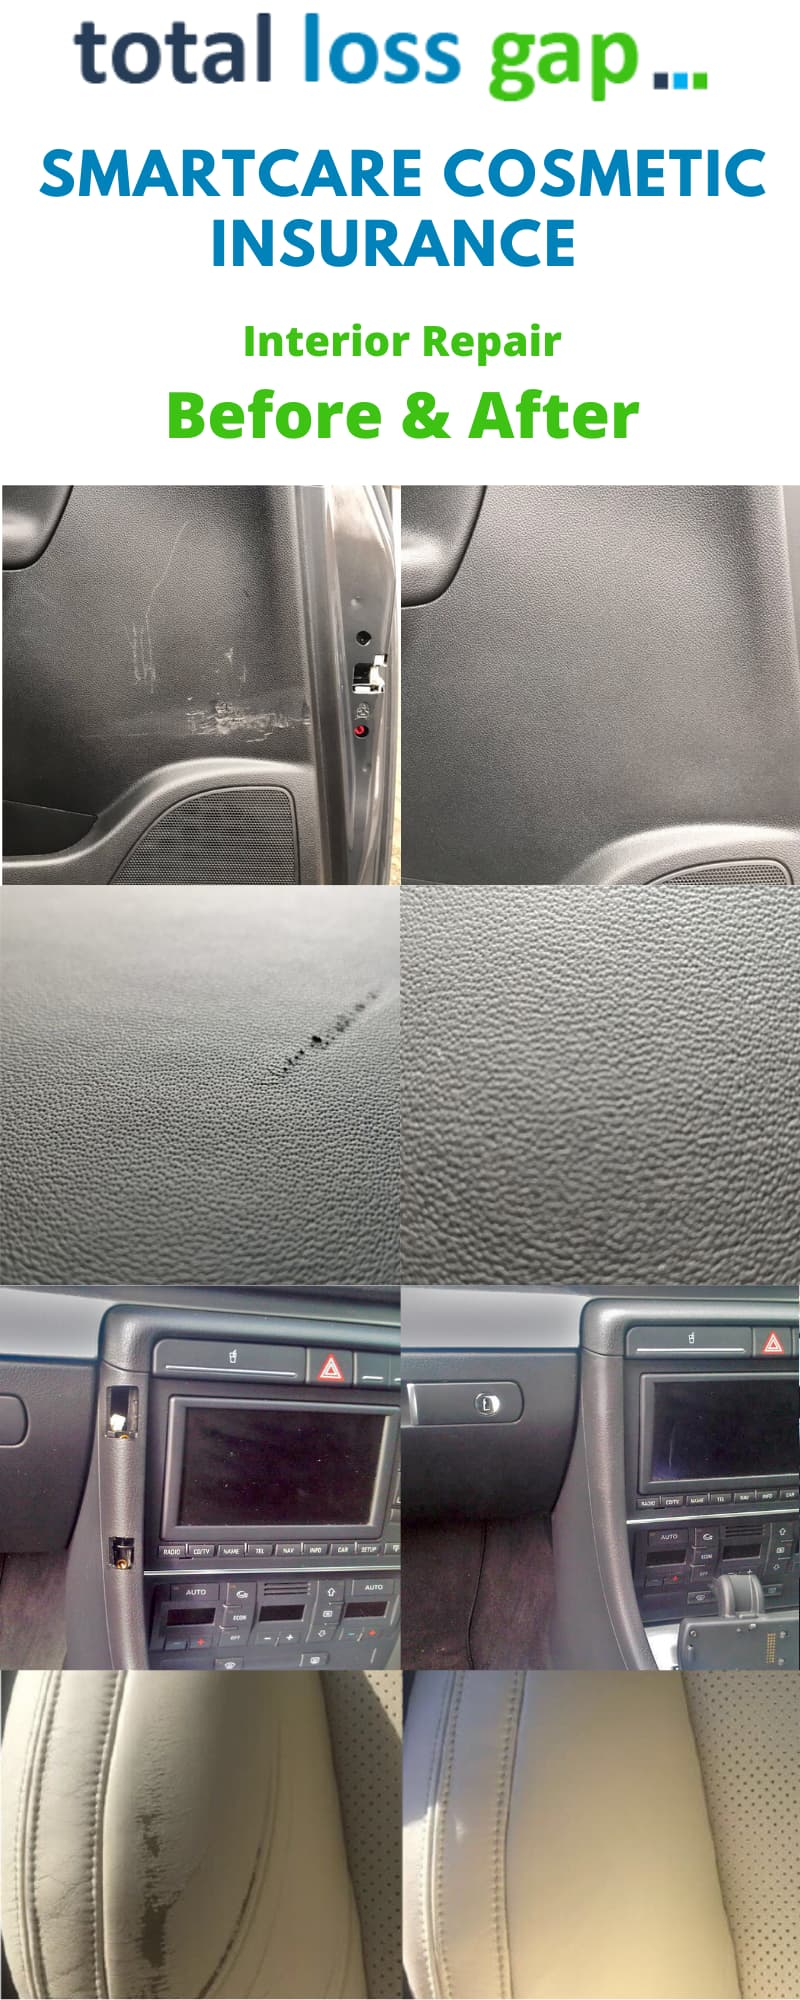 Smartcare Interior Repair before and after Totallossgap